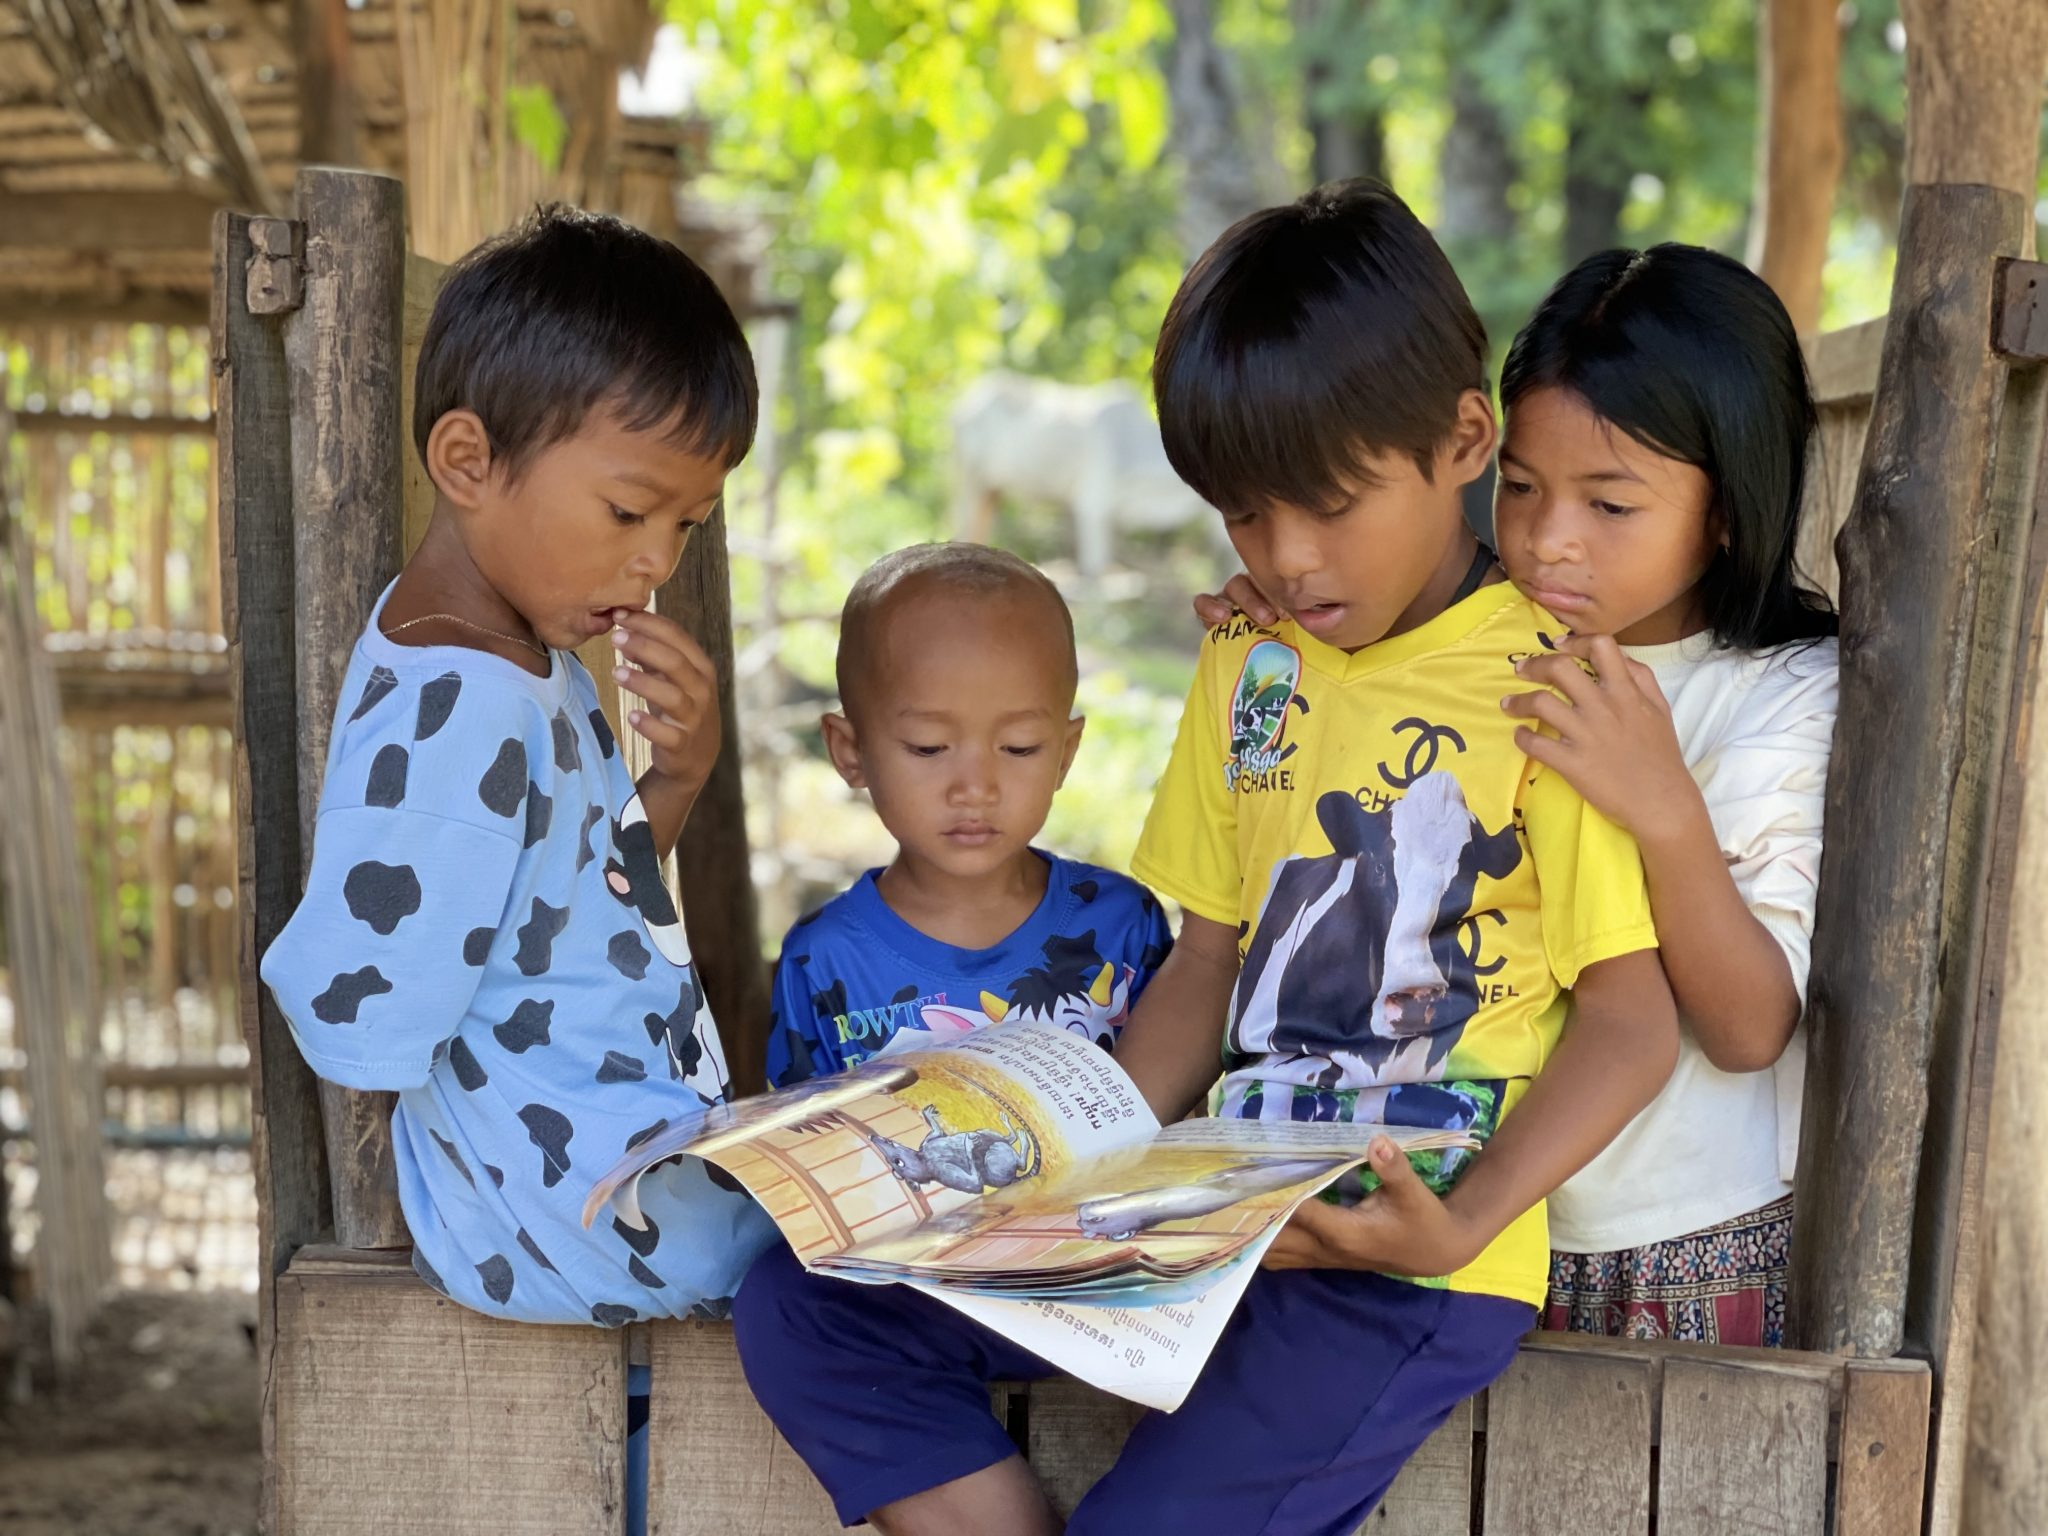 Children in the Baset district of Kampong Speu province read books borrowed from mobile libraries operated by the NGO World Vision. Photo taken September 7. World Vision